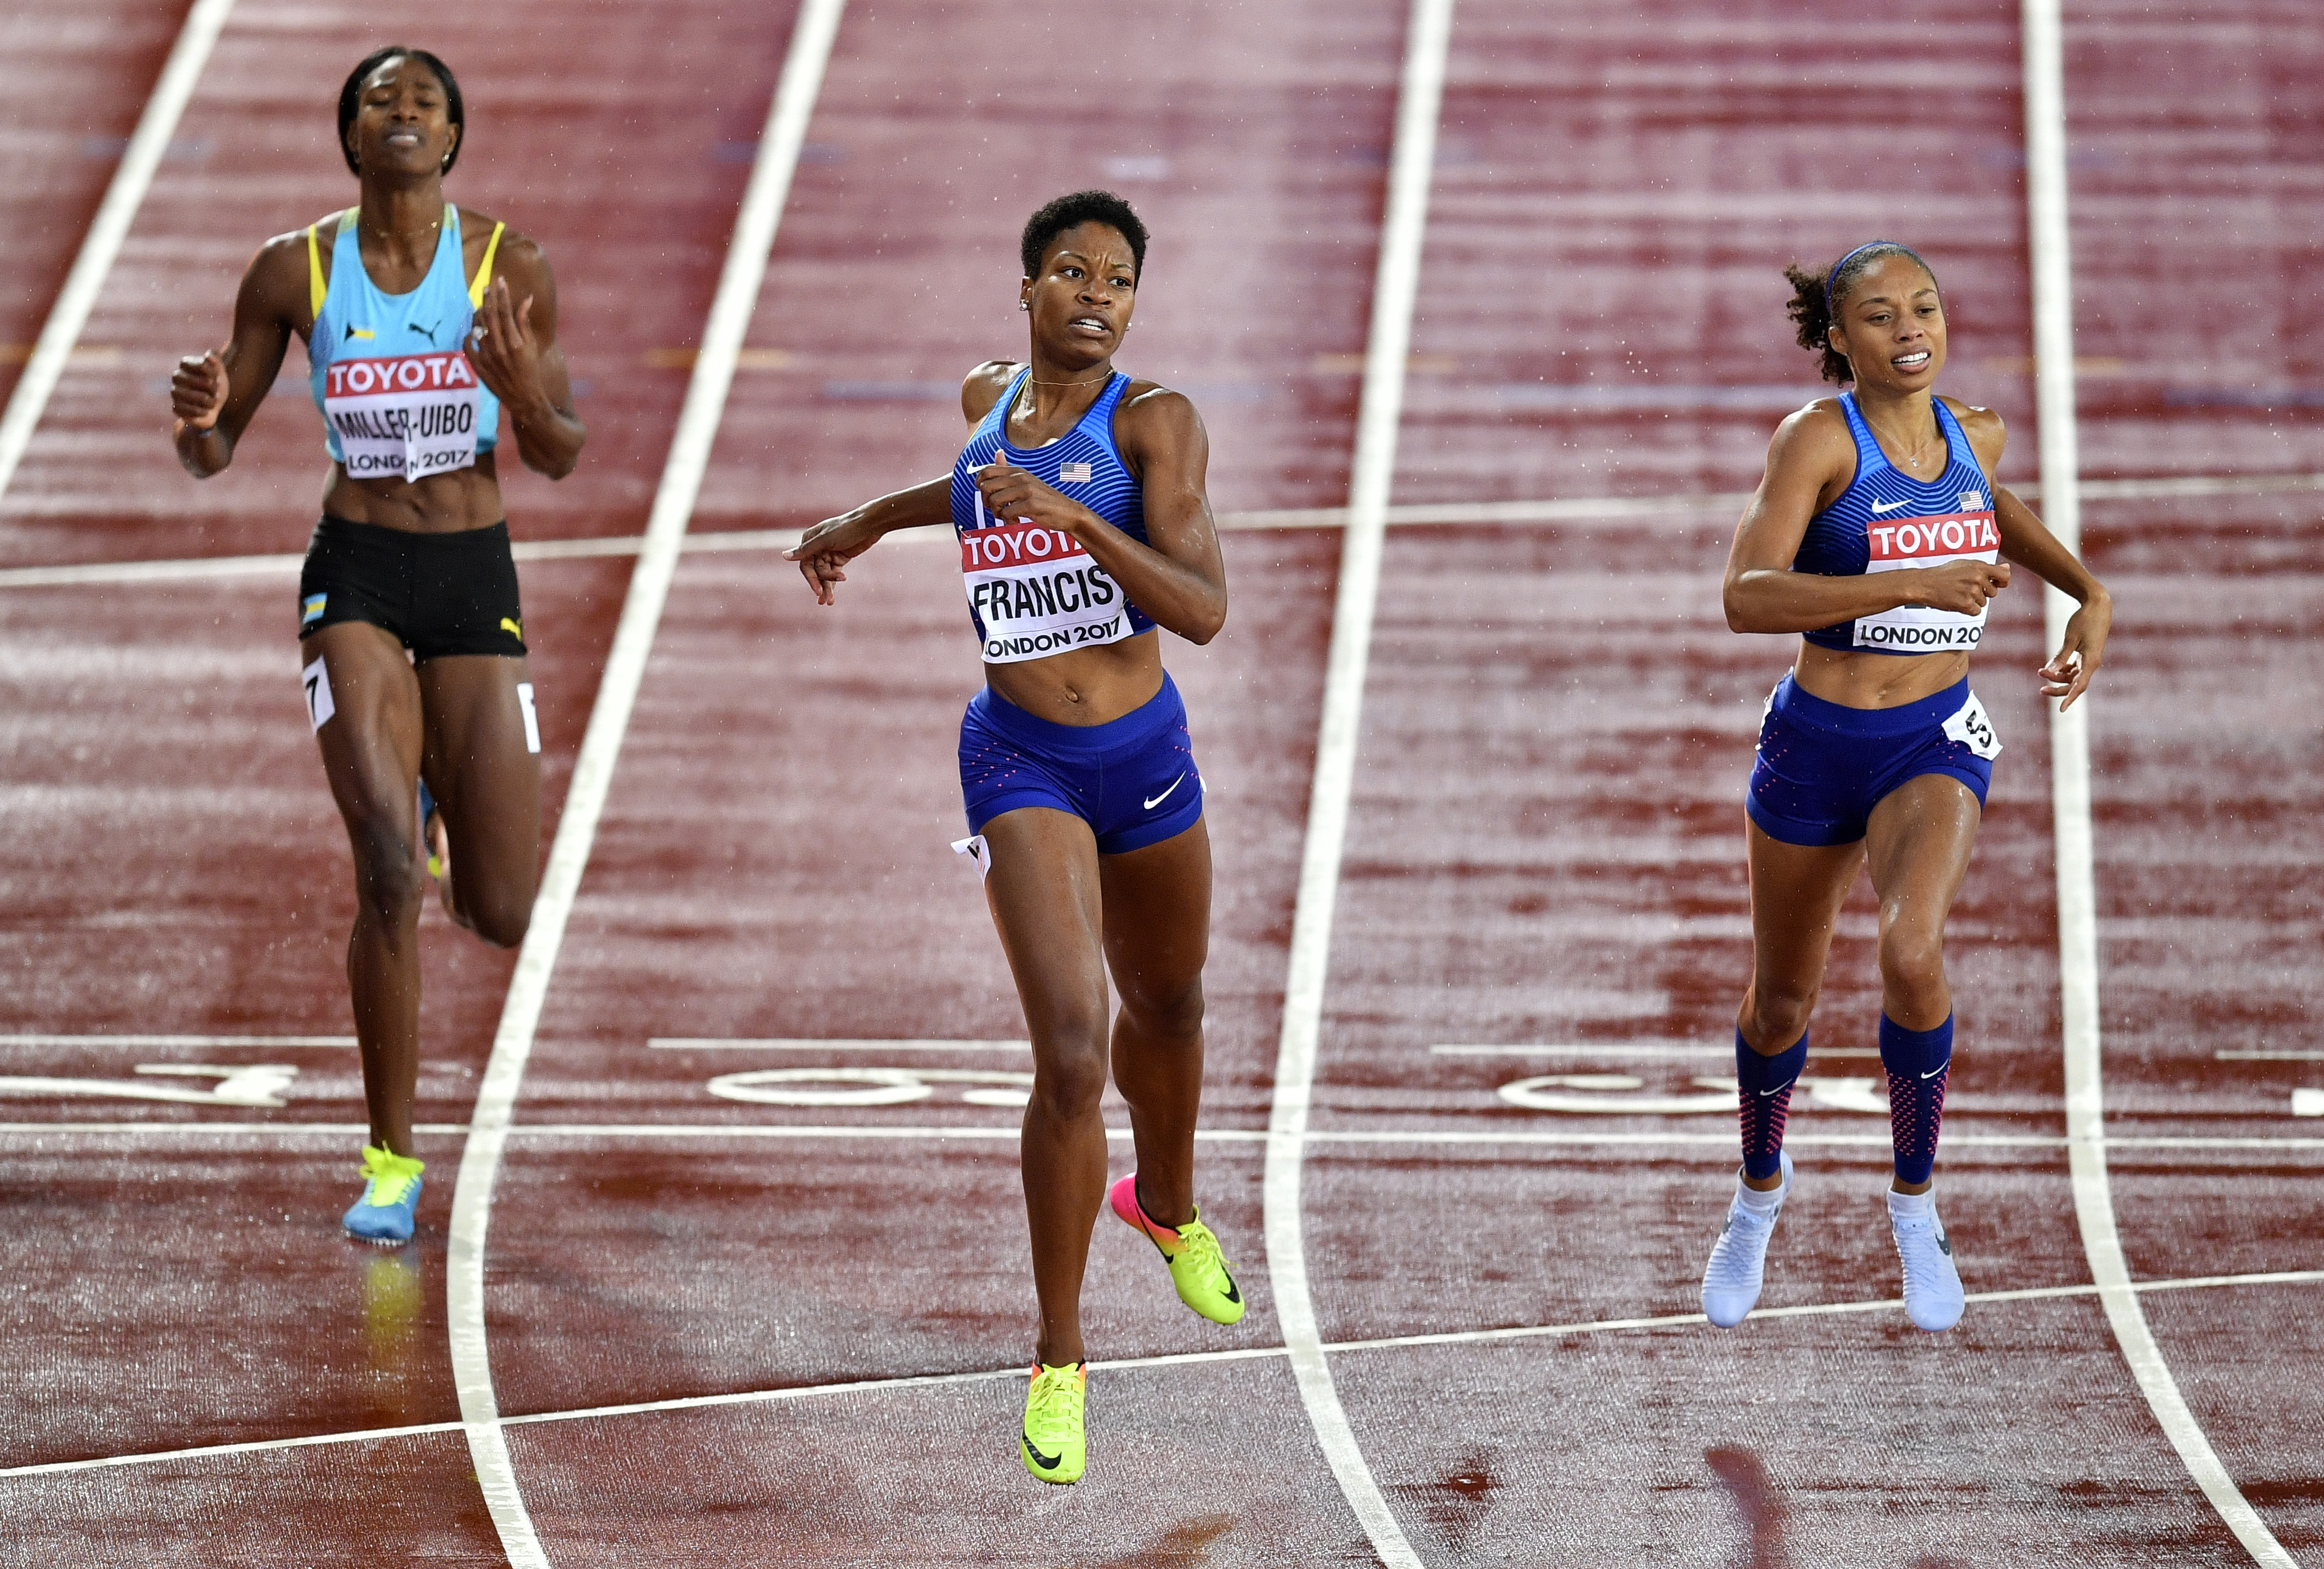 United States' Phyllis Francis, second left, crosses the finish line to win the Women's 400 meters final head of third placed compatriot Allyson Felix, right, and Bahamas' Shaunae Miller-Uibo at the World Athletics Championships in London Wednesday, Aug.